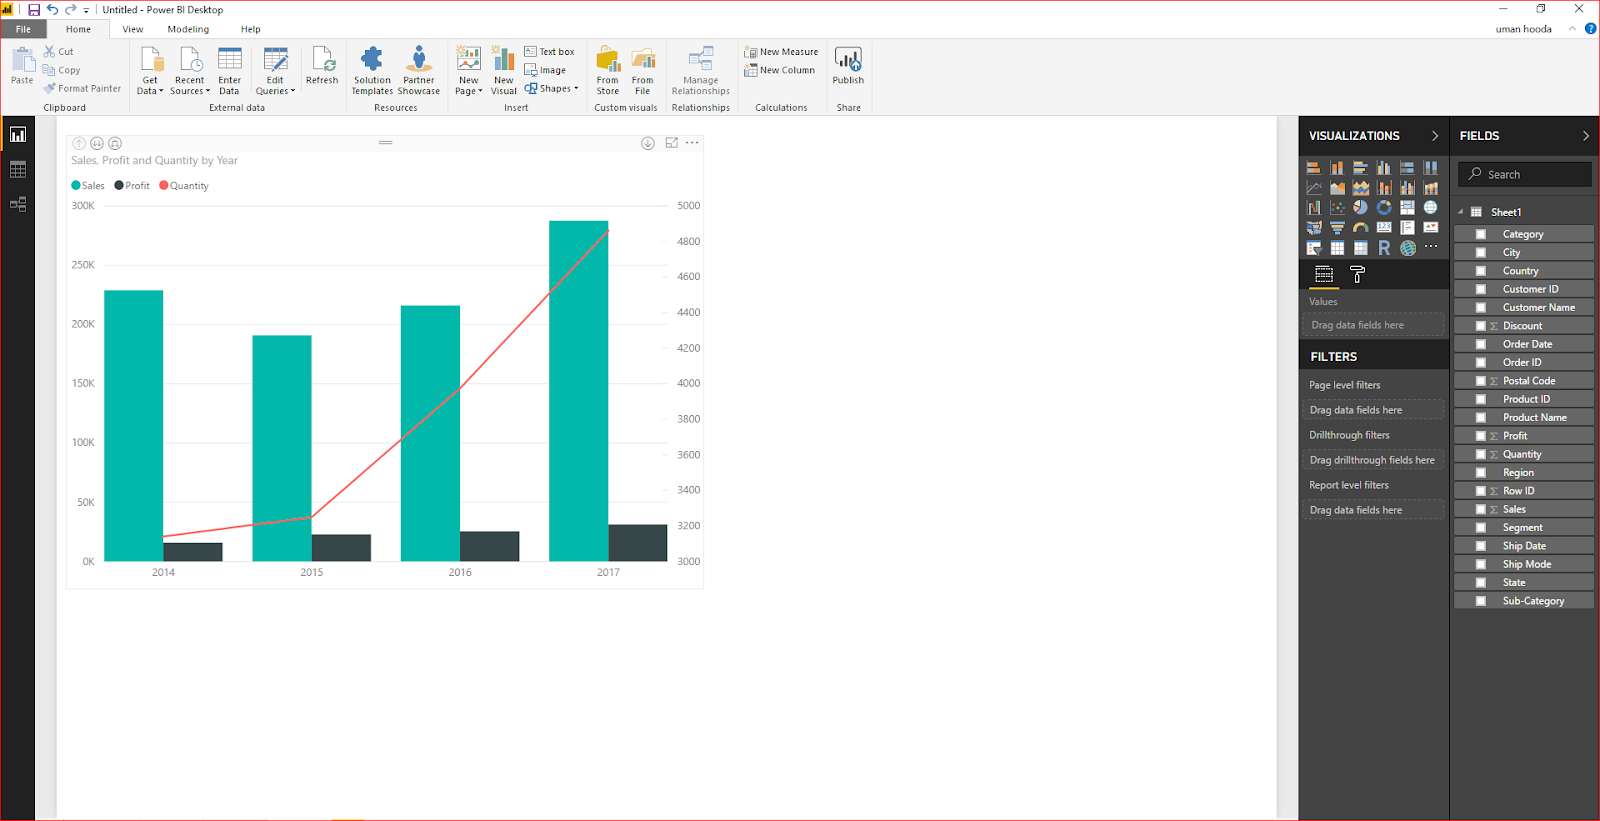 Dual Axis Chart in Microsoft Power BI - Step By Step 40